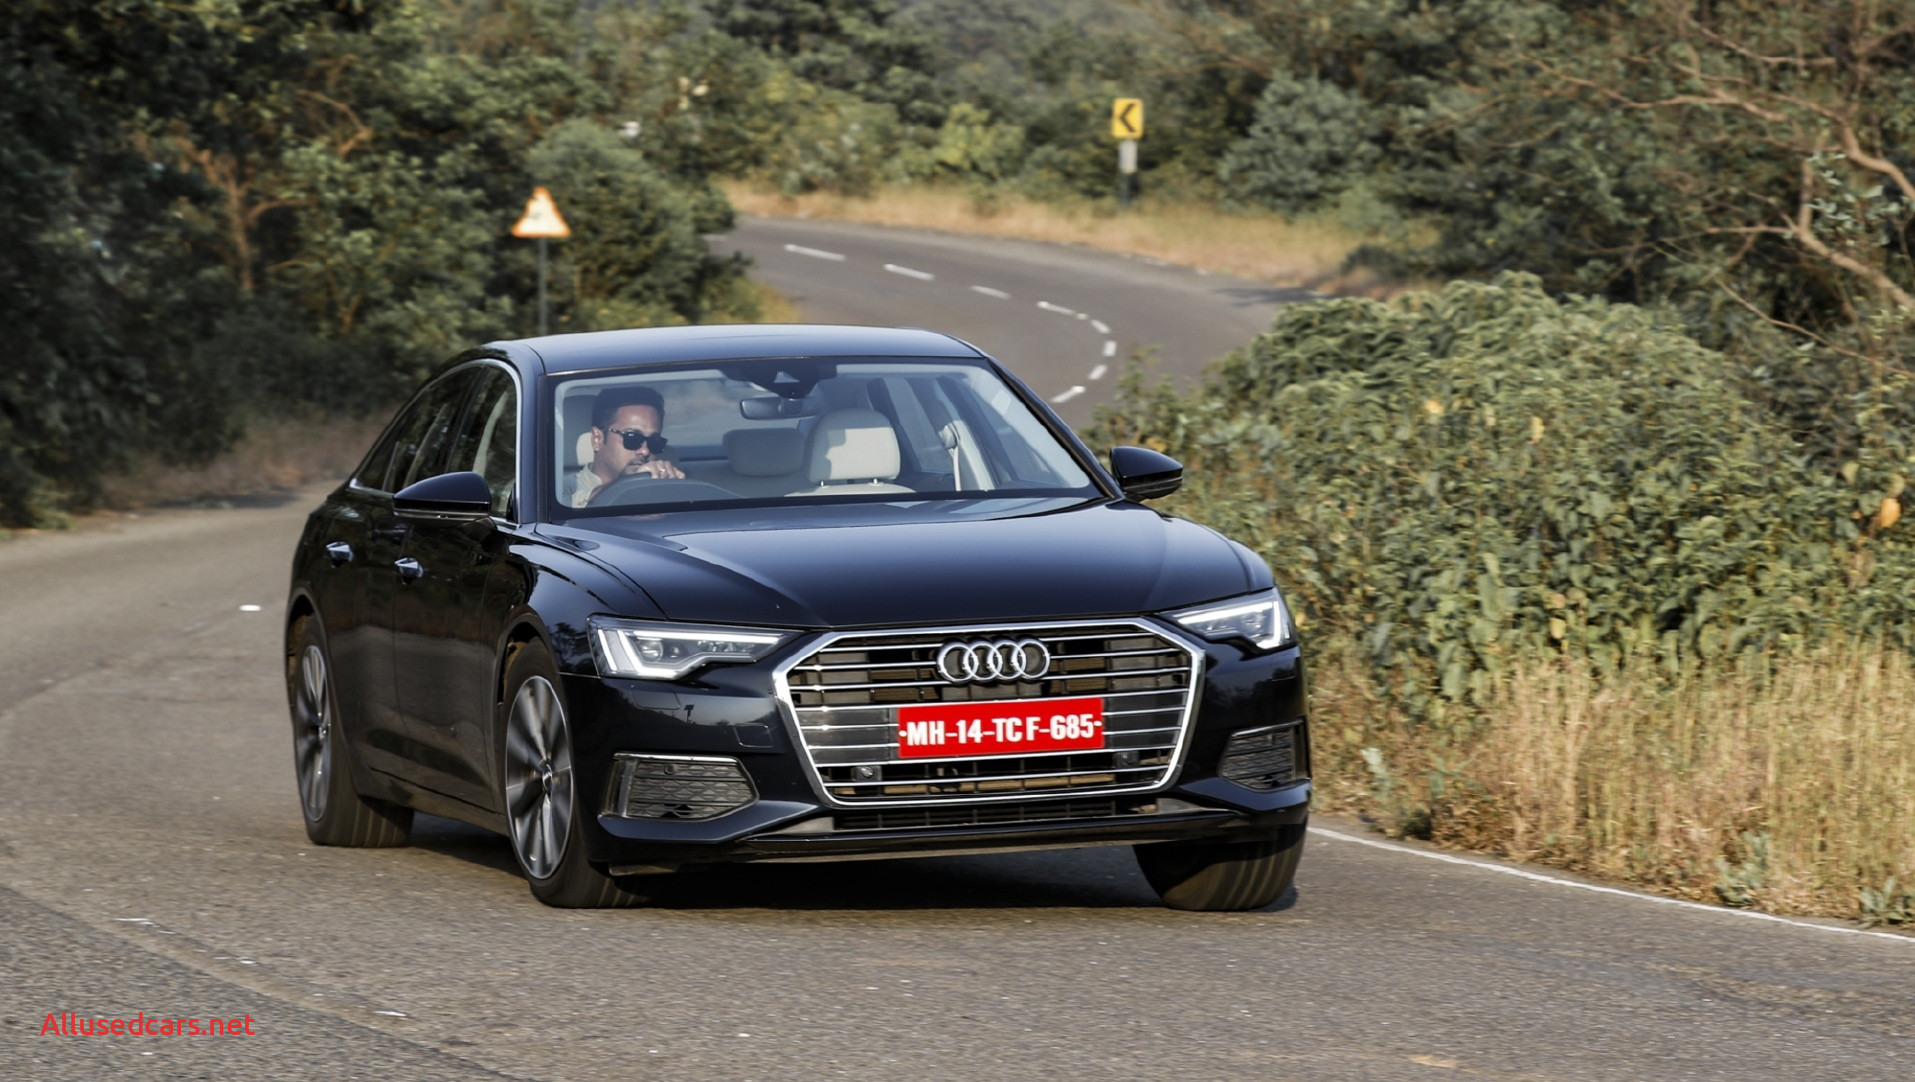 Used Cars for Sale In Chennai Unique Audi A6 Bs6 Price December Fers Colours